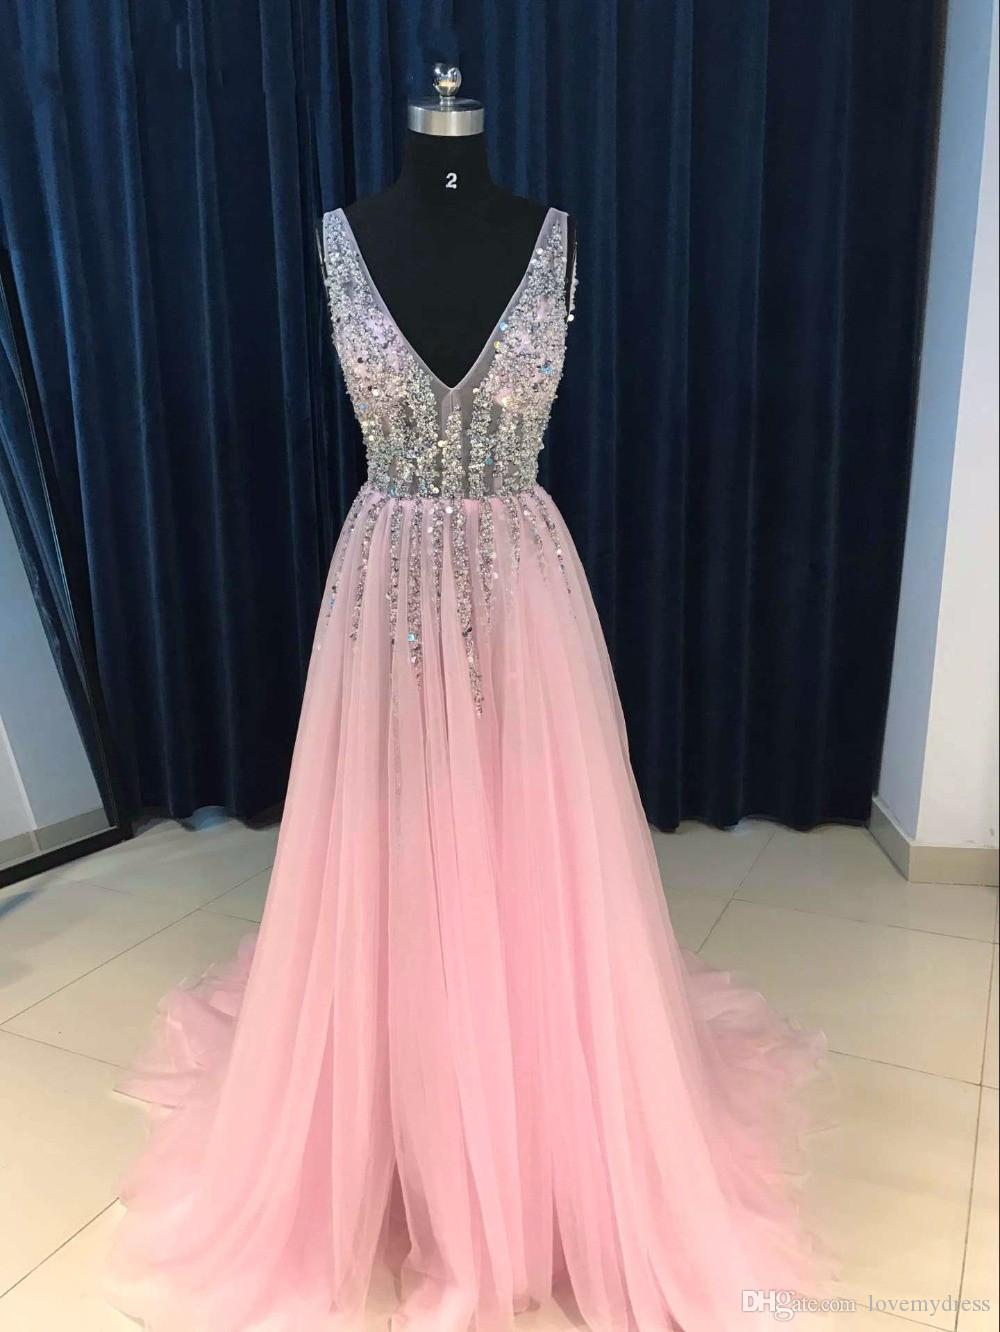 Sparkly Deep V neck Pearls Champagne 2020 Pageant Prom Dress Wine Red Cheap Long Backless See Through Beaded Backless Tulle Evening Gown